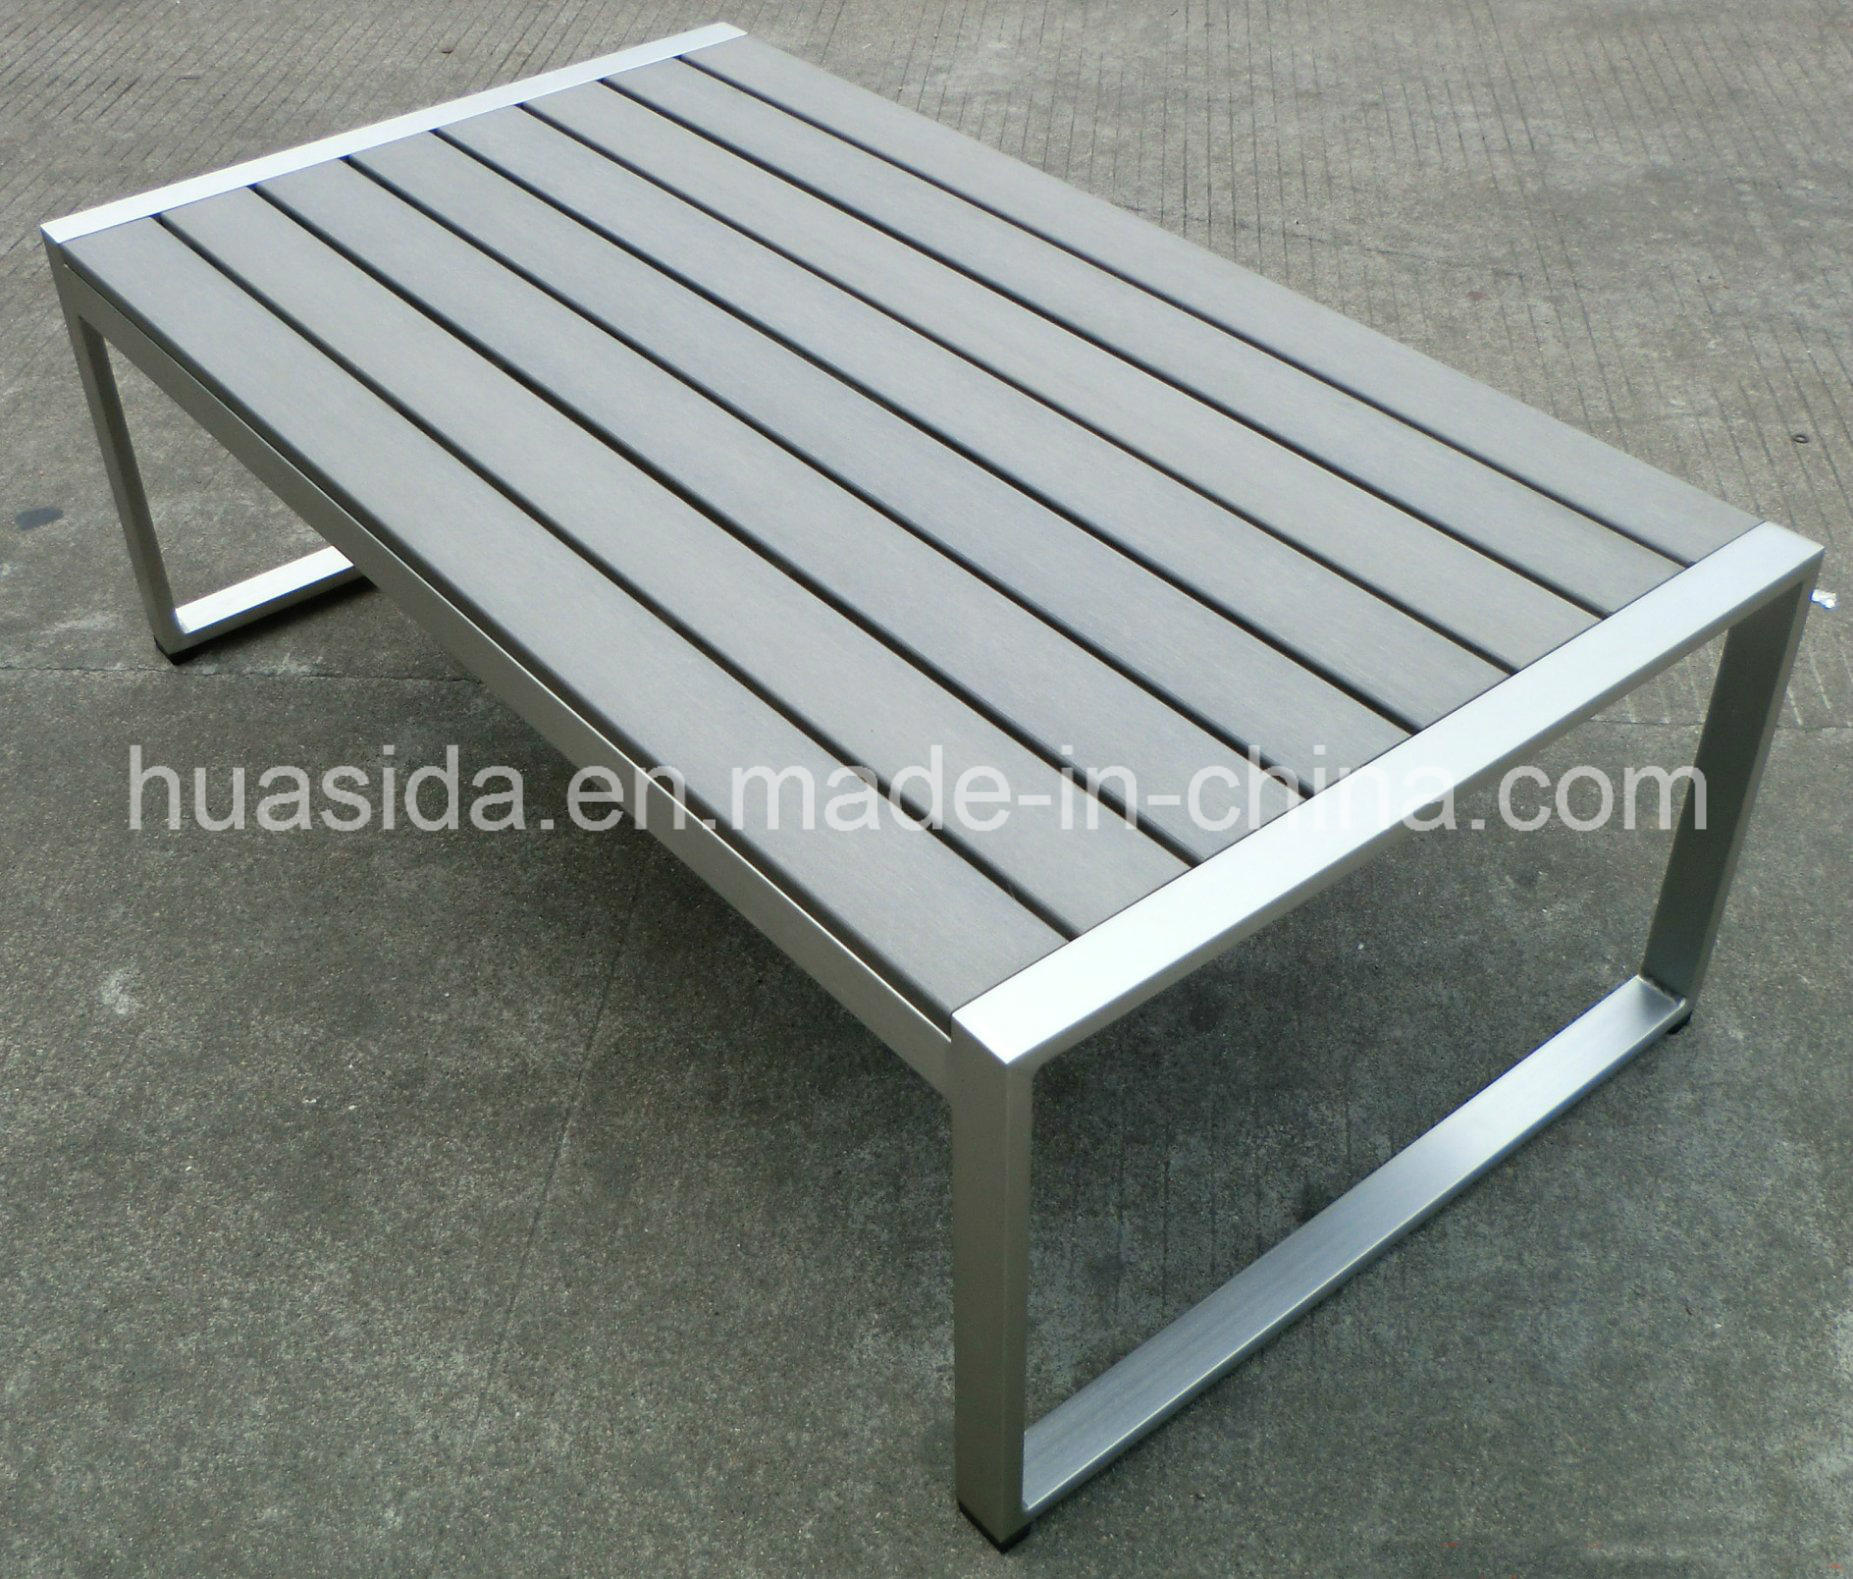 Outdoor 4-PCS Waterproof 304 Stainless Steel Sofa Set